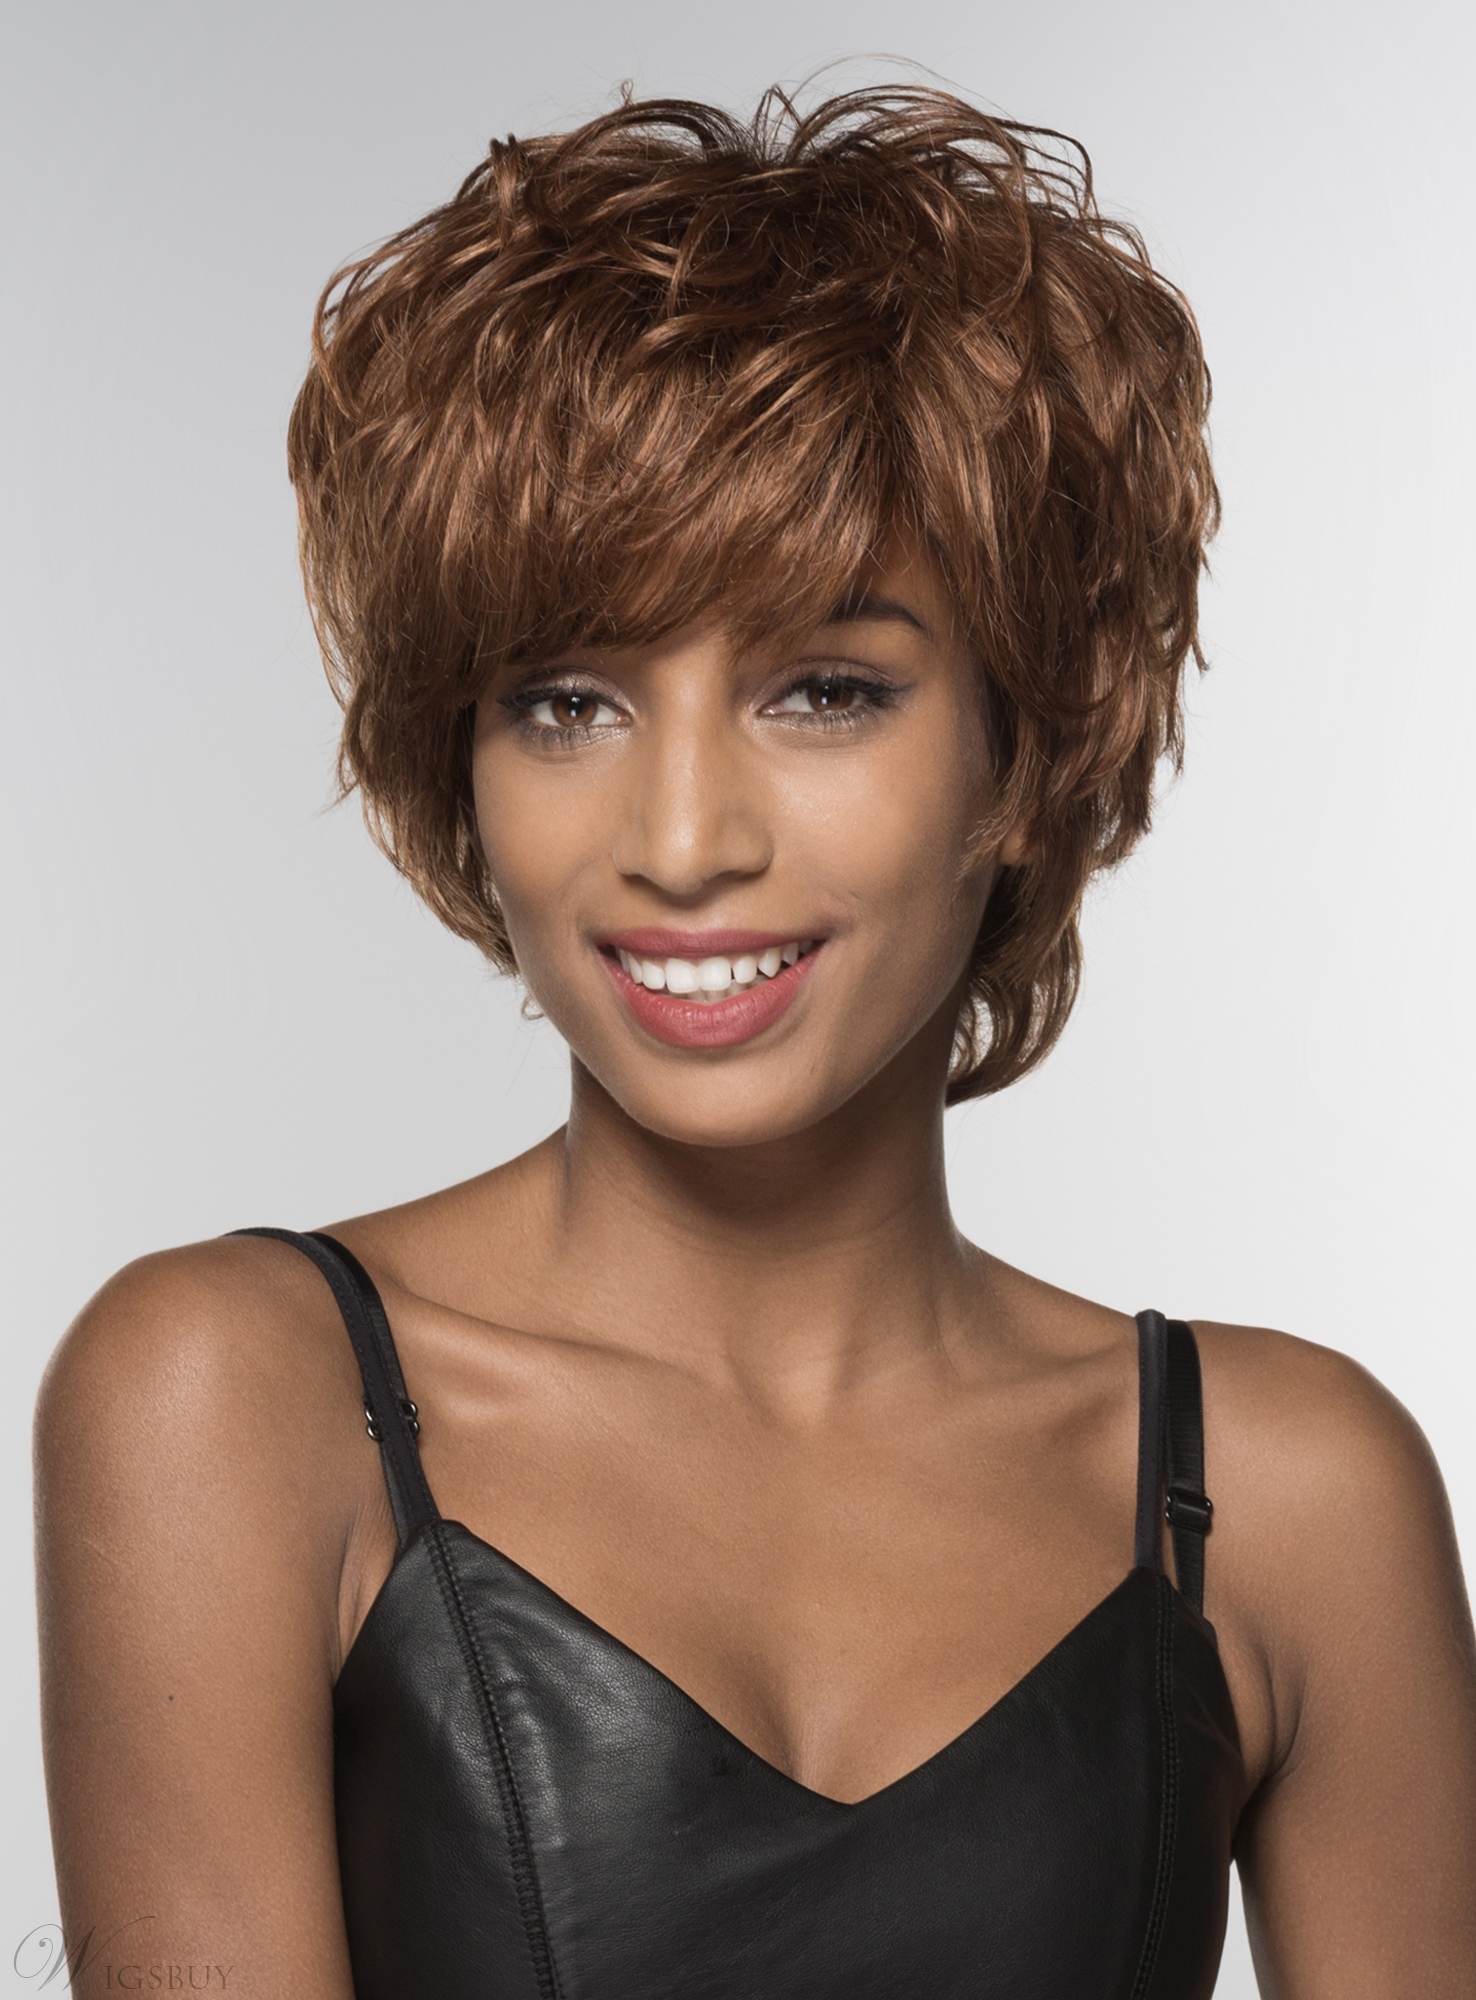 Mishair® African American Short Shaggy Loose Wavy Human Hair Capless 6 Inches